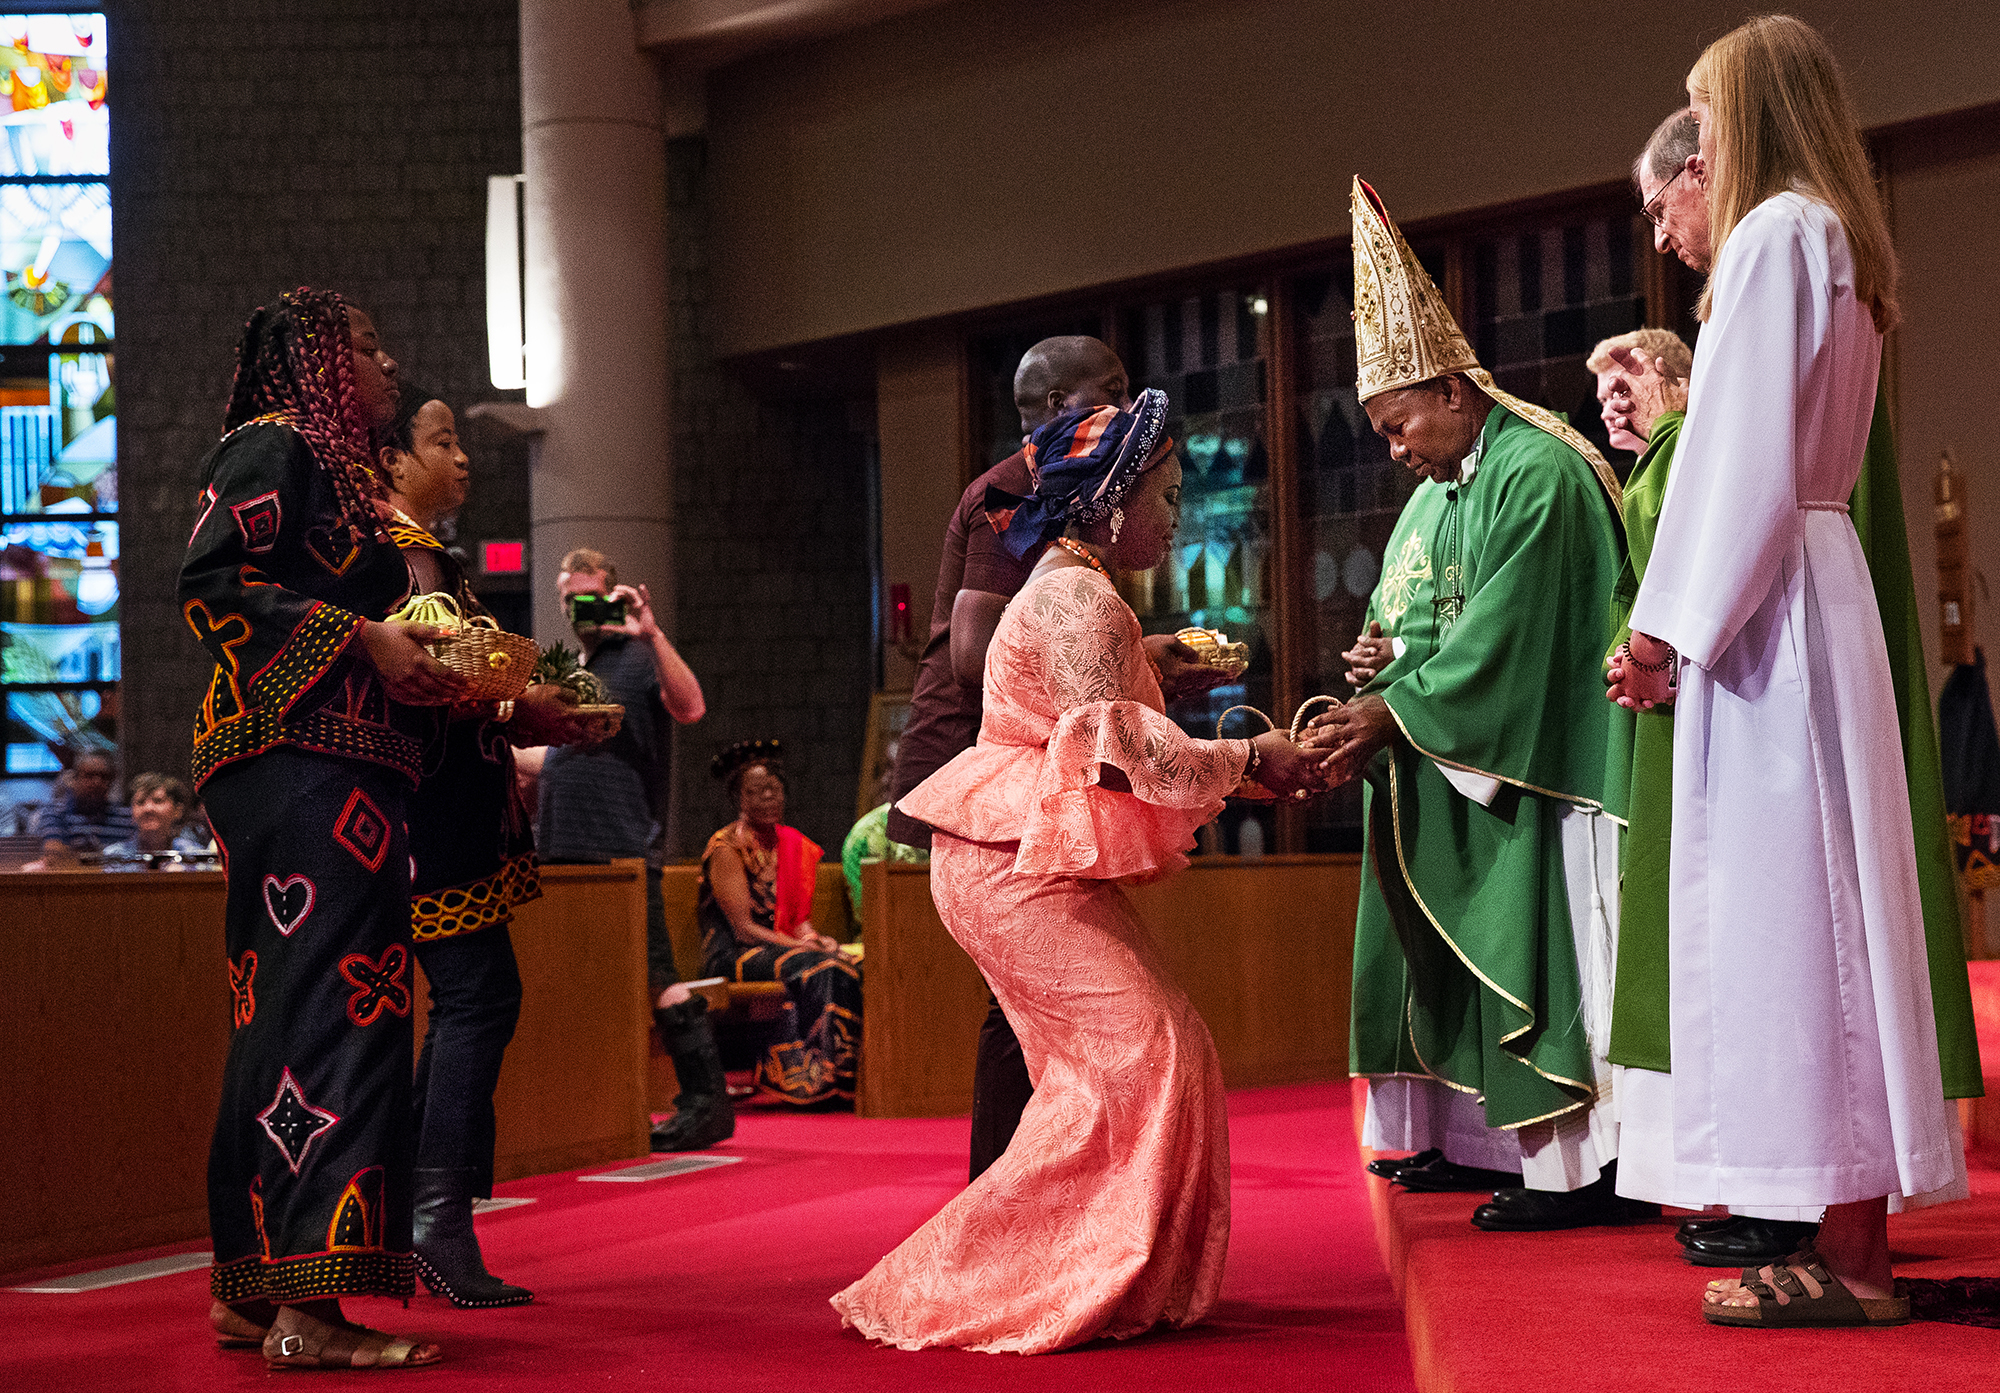 Lucy Tankoua presents a basket of strawberries to Archbishop Cornelius Fontem Esua from the Archdiocese of Bamenda, Cameroon, during the offertory Sunday, July 29, 2018. The special service included music by the African Ensemble of Central Illinois, authentic African art and a meal of African food afterwards. [Ted Schurter/The State Journal-Register]